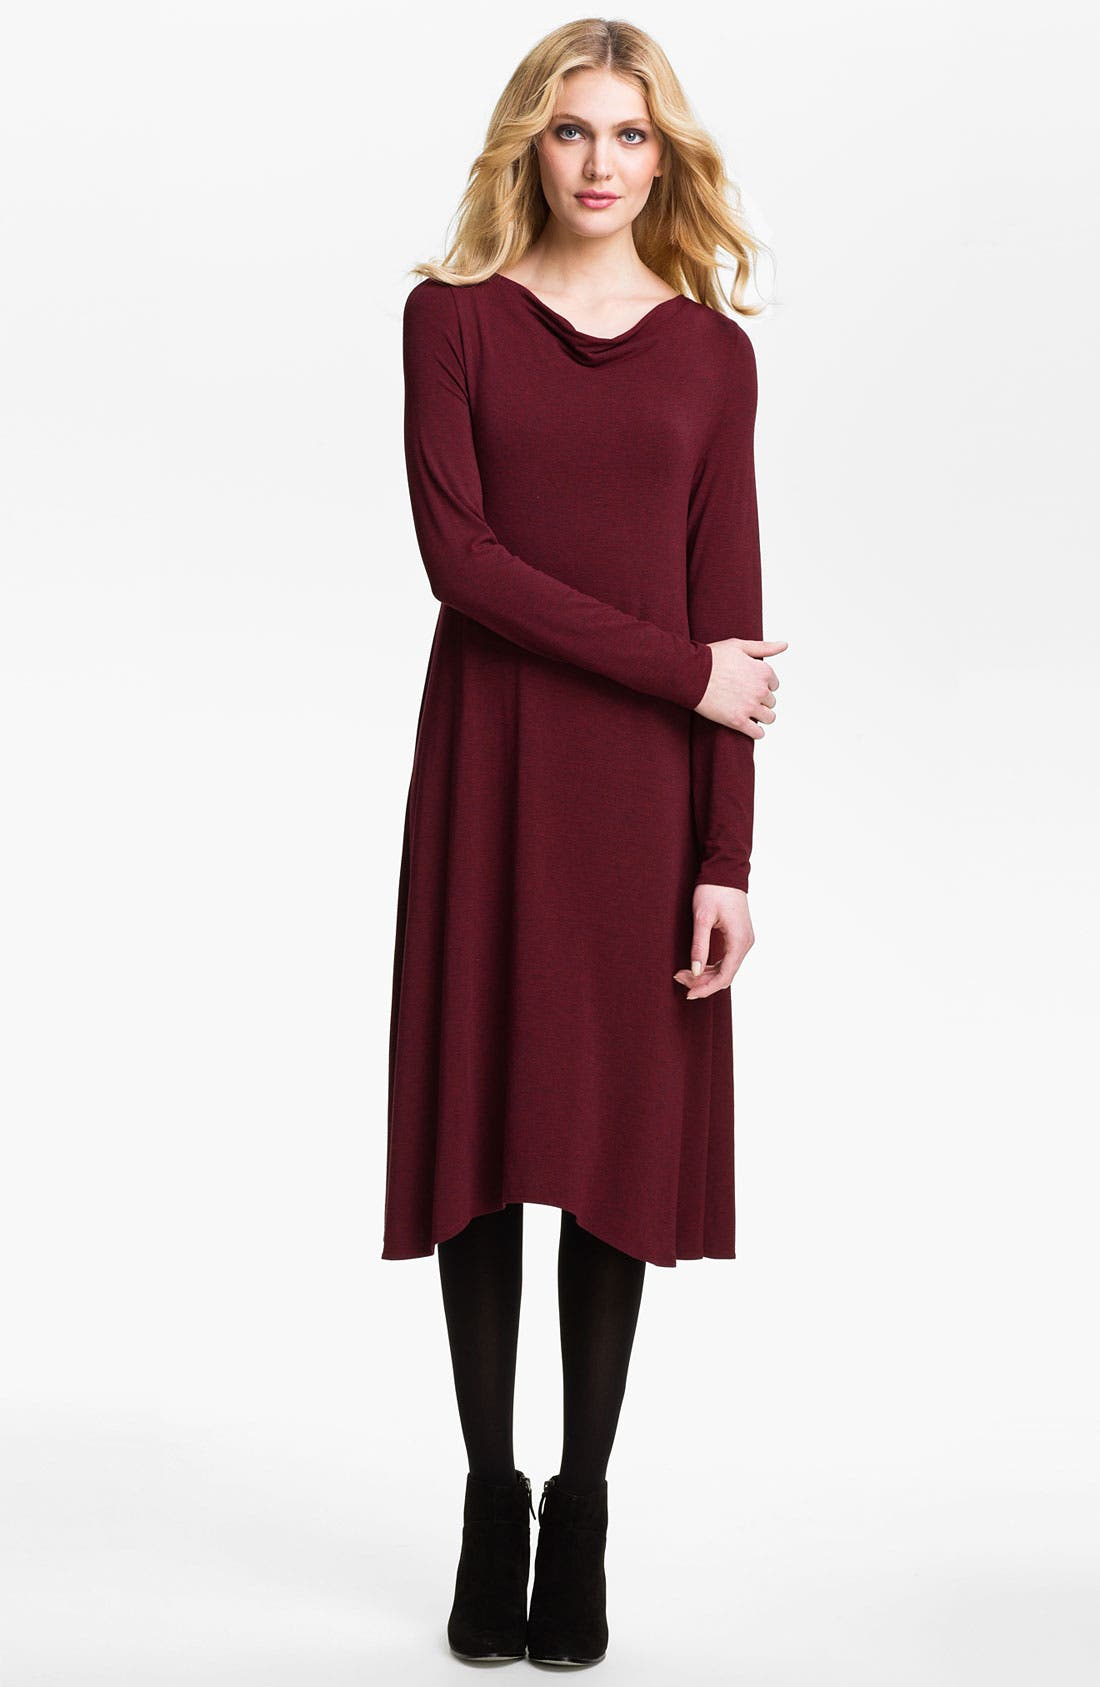 Alternate Image 1 Selected - Eileen Fisher Drape Neck Dress (Online Exclusive)